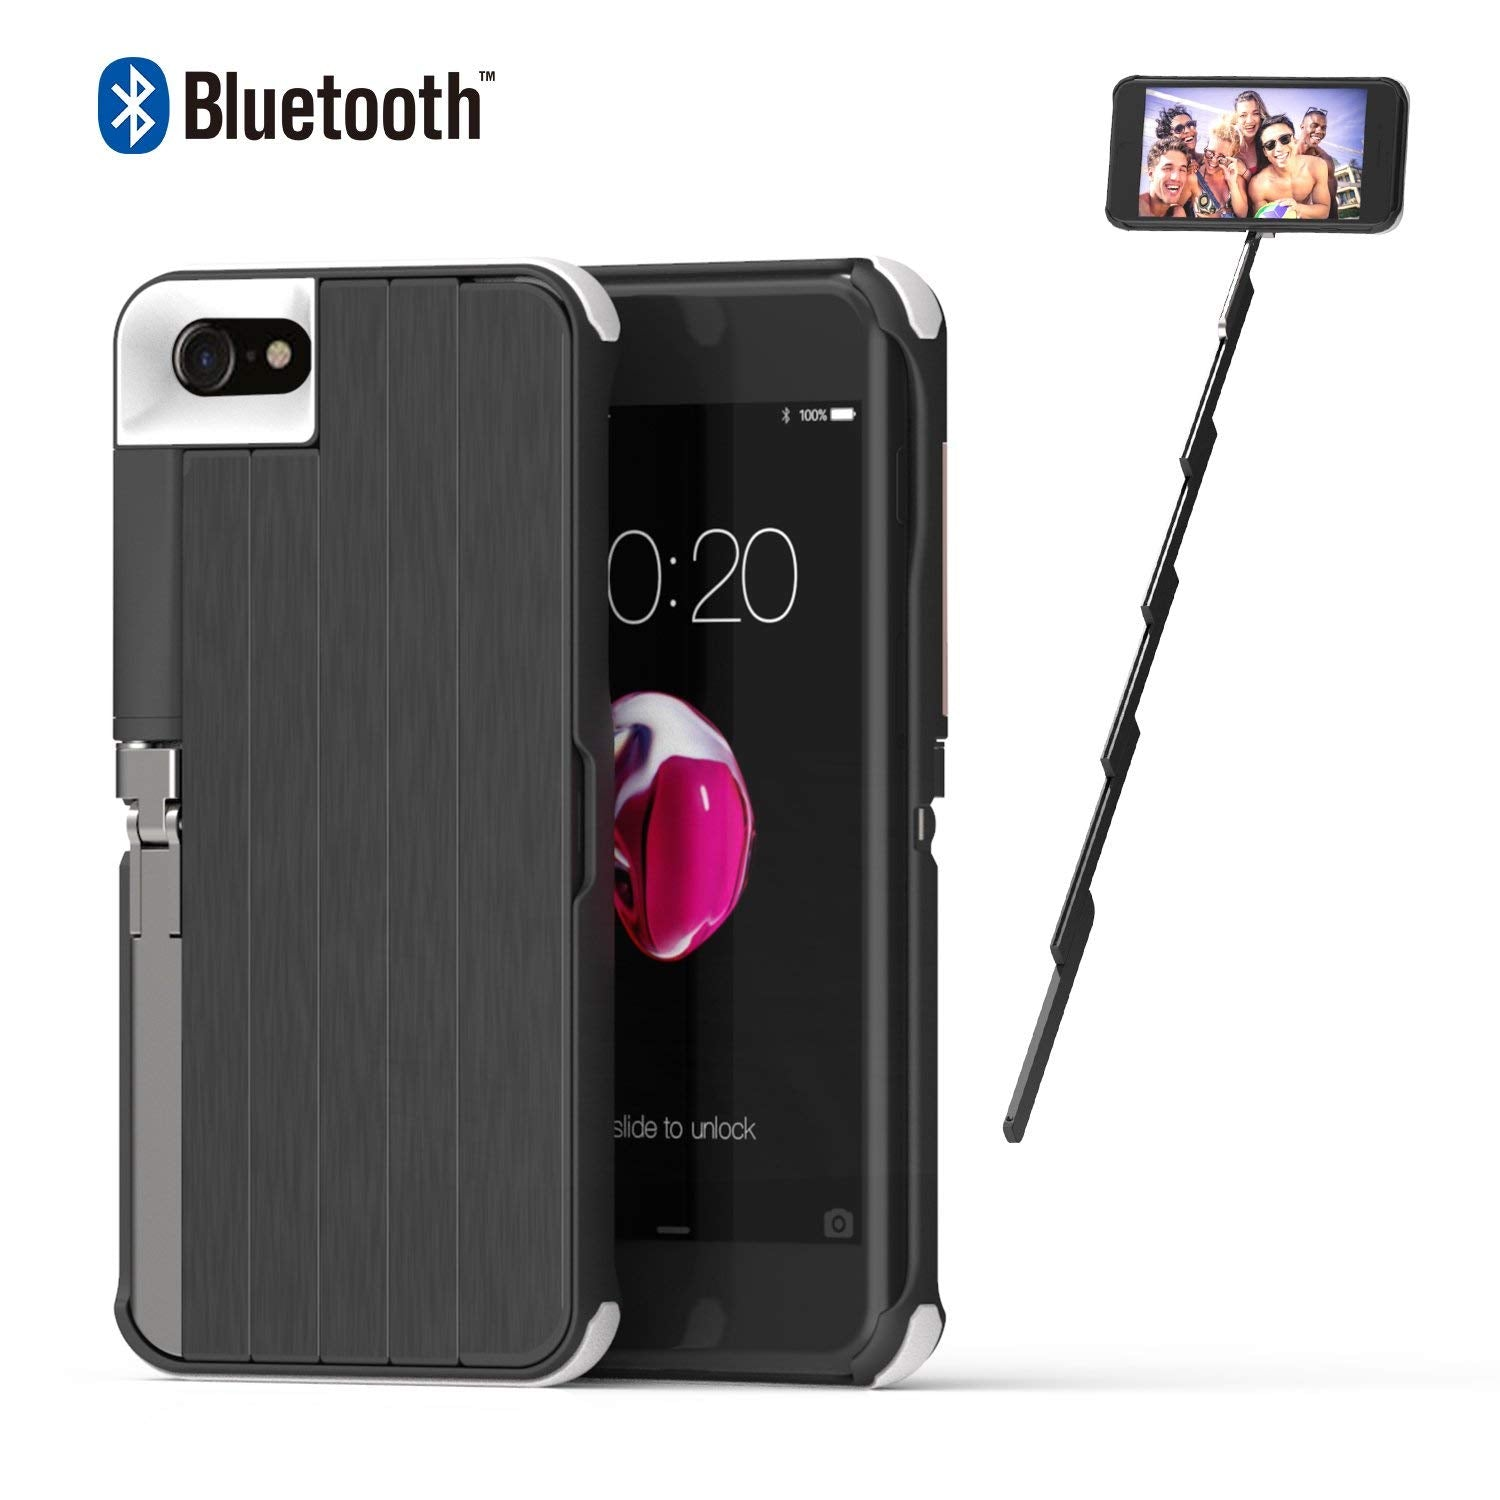 Selfie Stick Case for iPhone 7/8  iPhone 8 Case Black iPhone 7 Case with Rechargeable Wireless Bluetooth Selfie Stick Extendable Aluminium Kickstand Hard Case Protection Shockproof